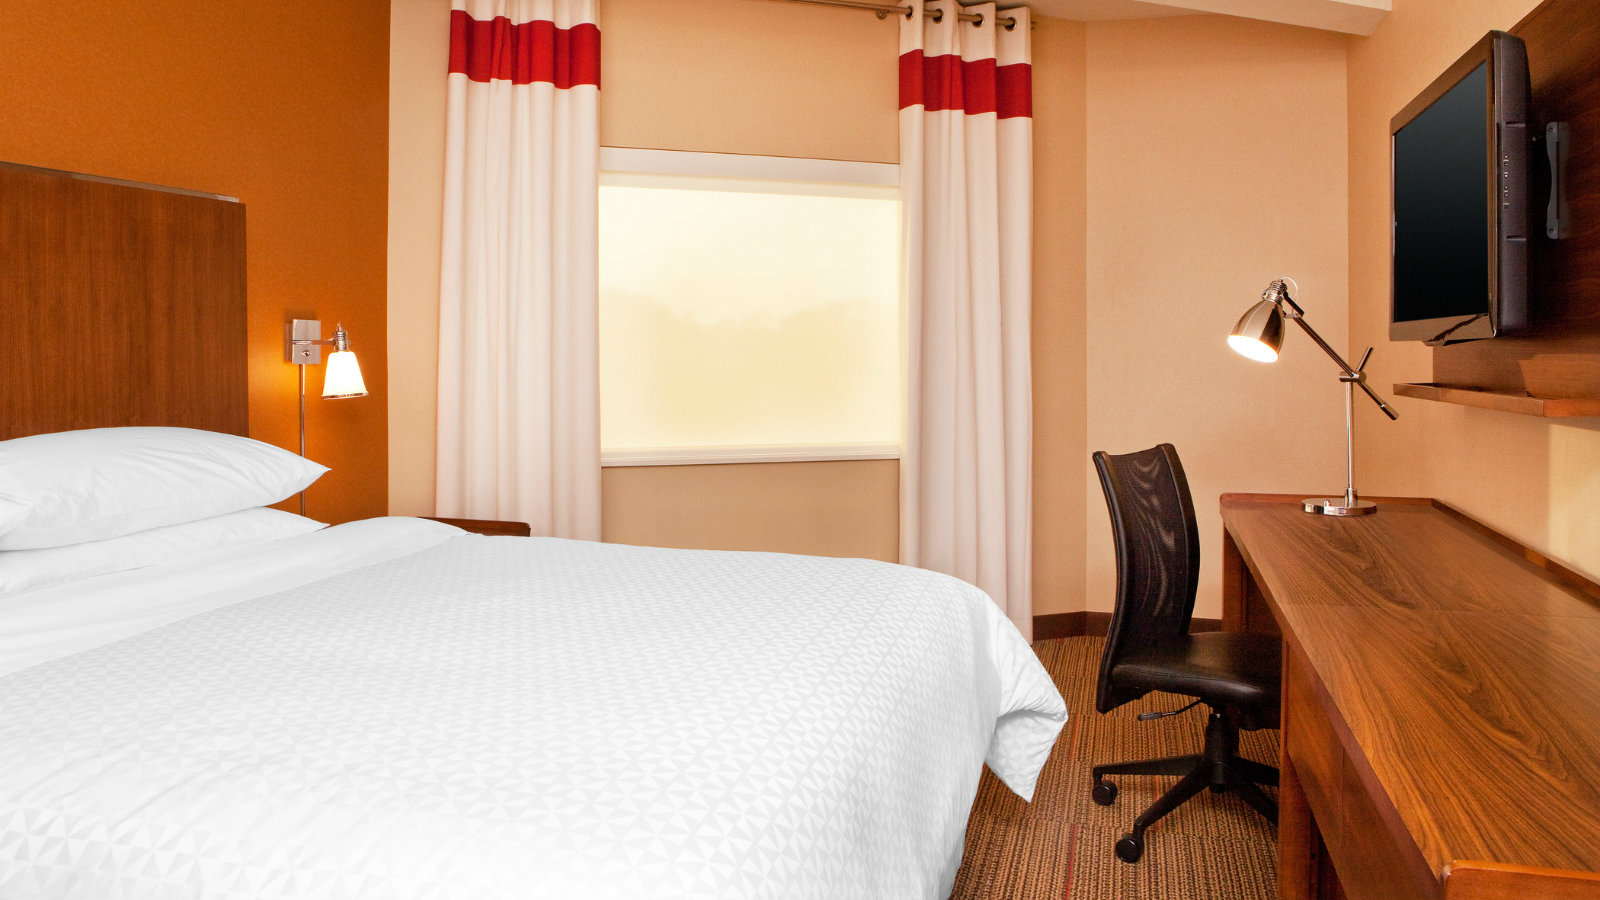 Newark Accommodations - Accessible Room